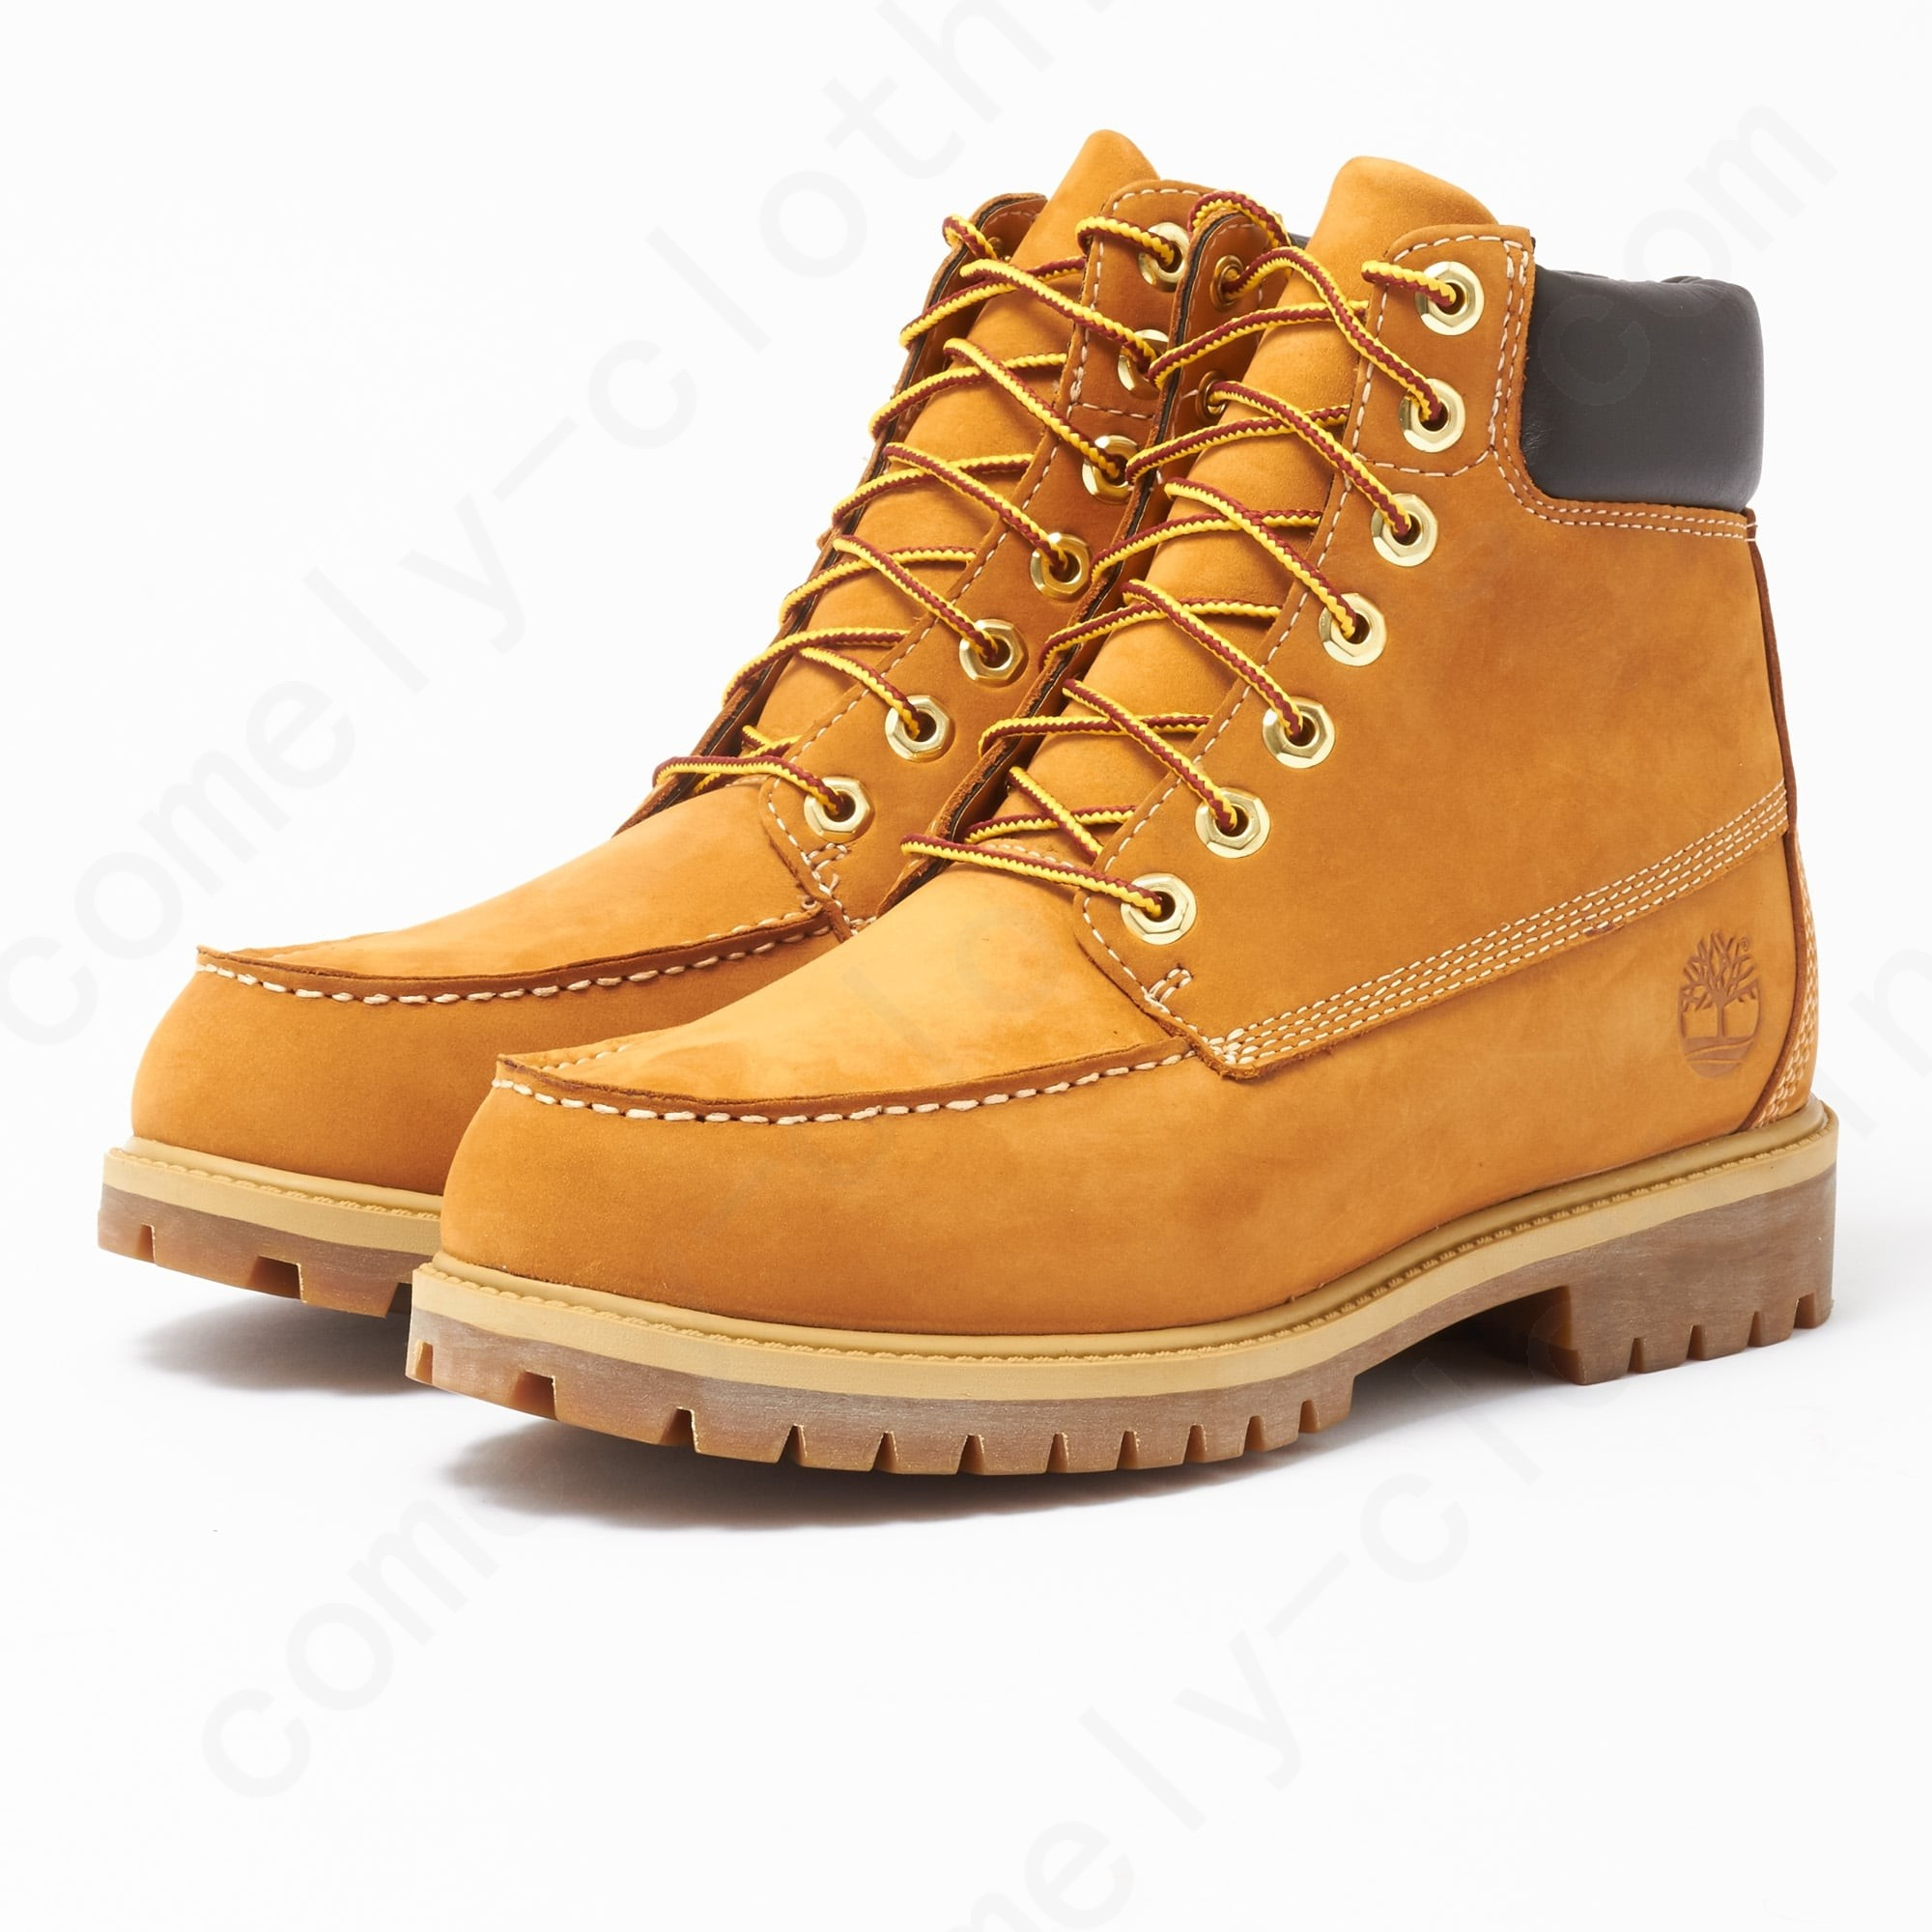 Timberland Wheat Icon -Inch Moc Boot Mens - Timberland Wheat Icon -Inch Moc Boot Mens